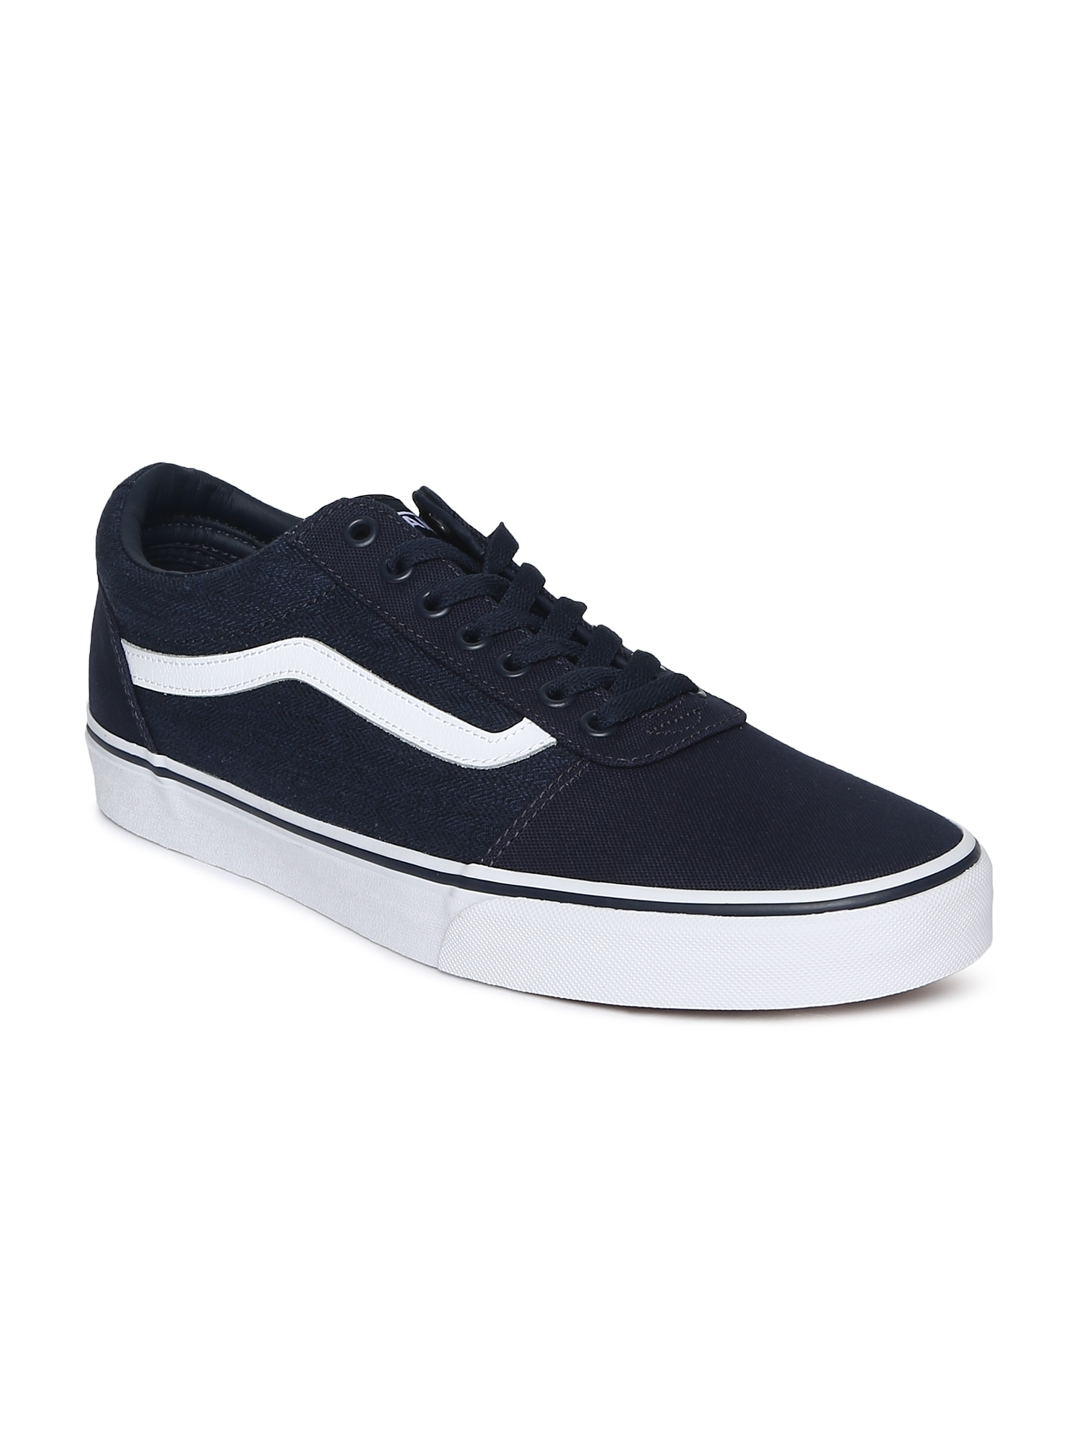 56958586bd547c Buy Vans Men Navy Blue Ward Sneakers - Casual Shoes for Men 7301215 ...